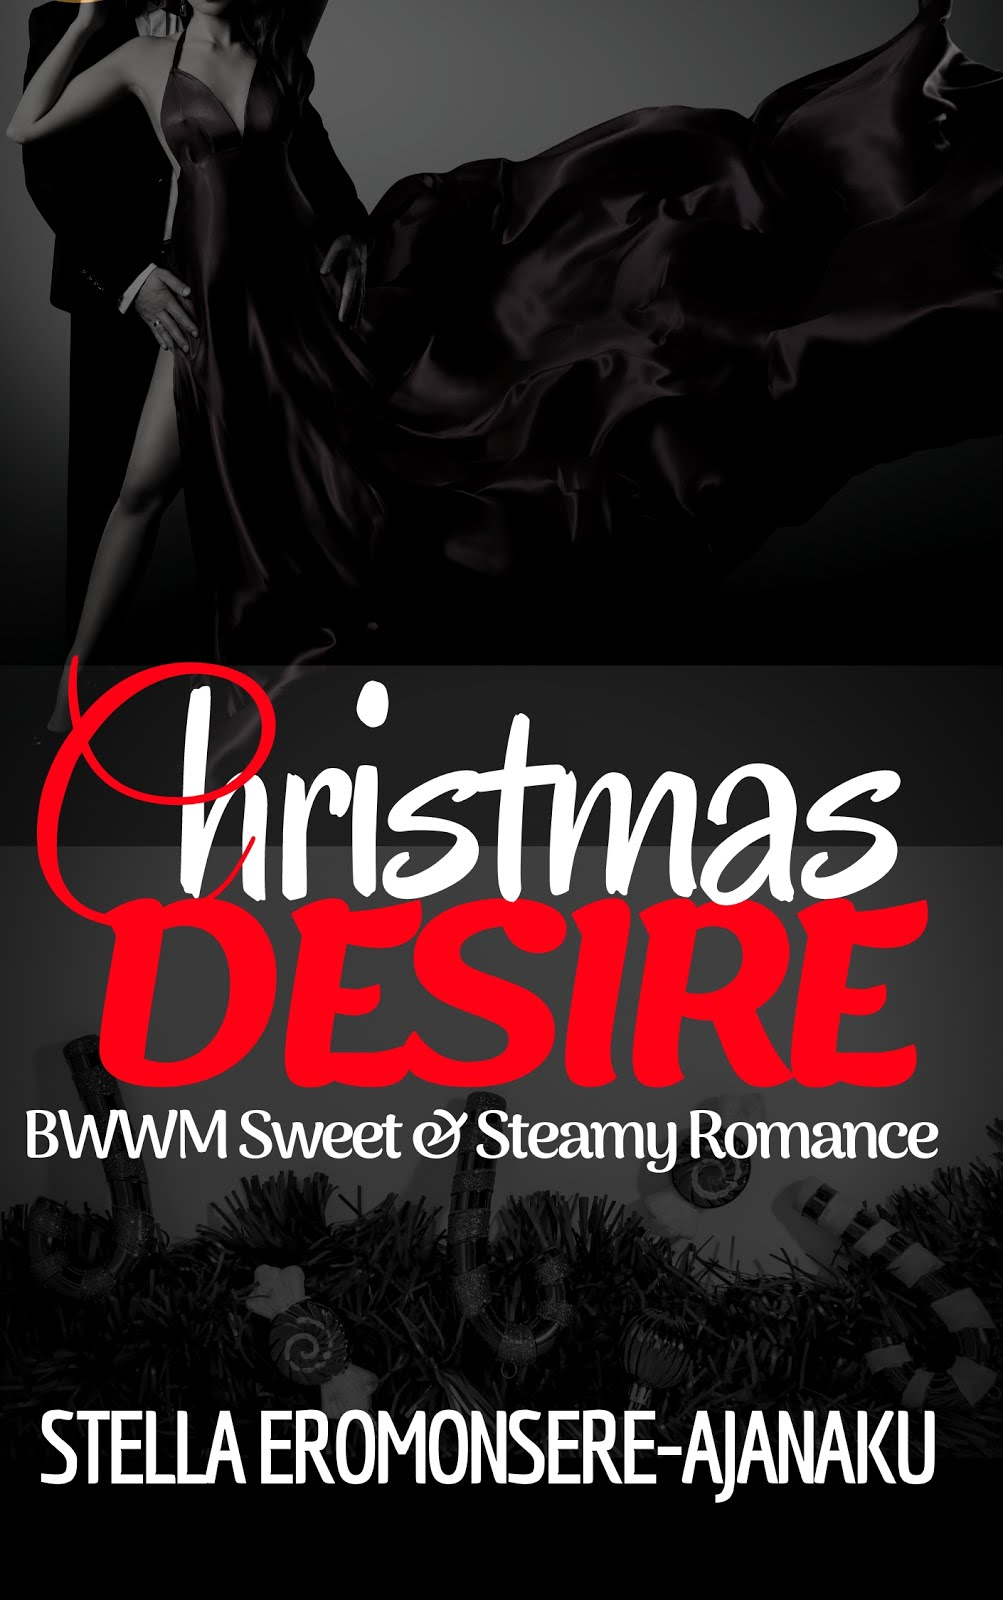 ¸.•*¨)🔥🔥¸.•*´¨) Read Christmas DESIRE ~ A Sizzling Romance¸.•*¨)🔥🔥¸.•*´¨)